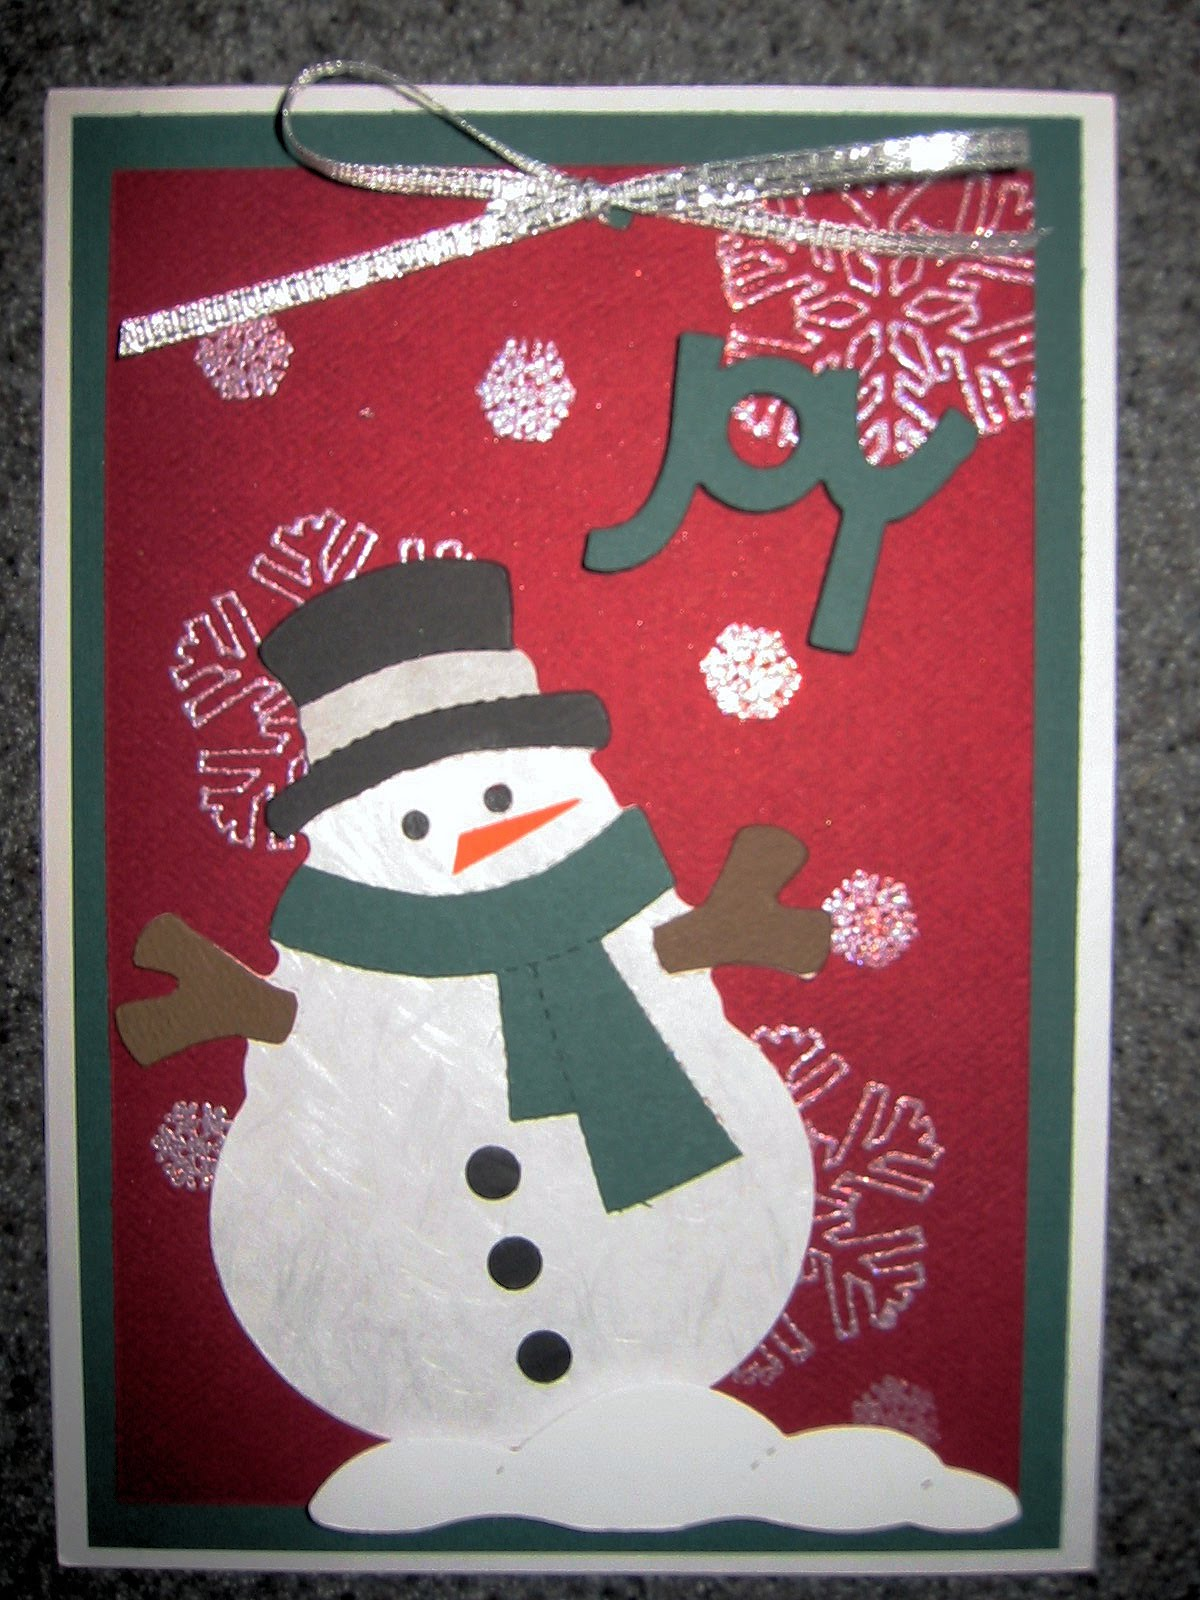 Almost} Wordless Wednesday - Handmade Christmas Cards by Me - MomSpotted